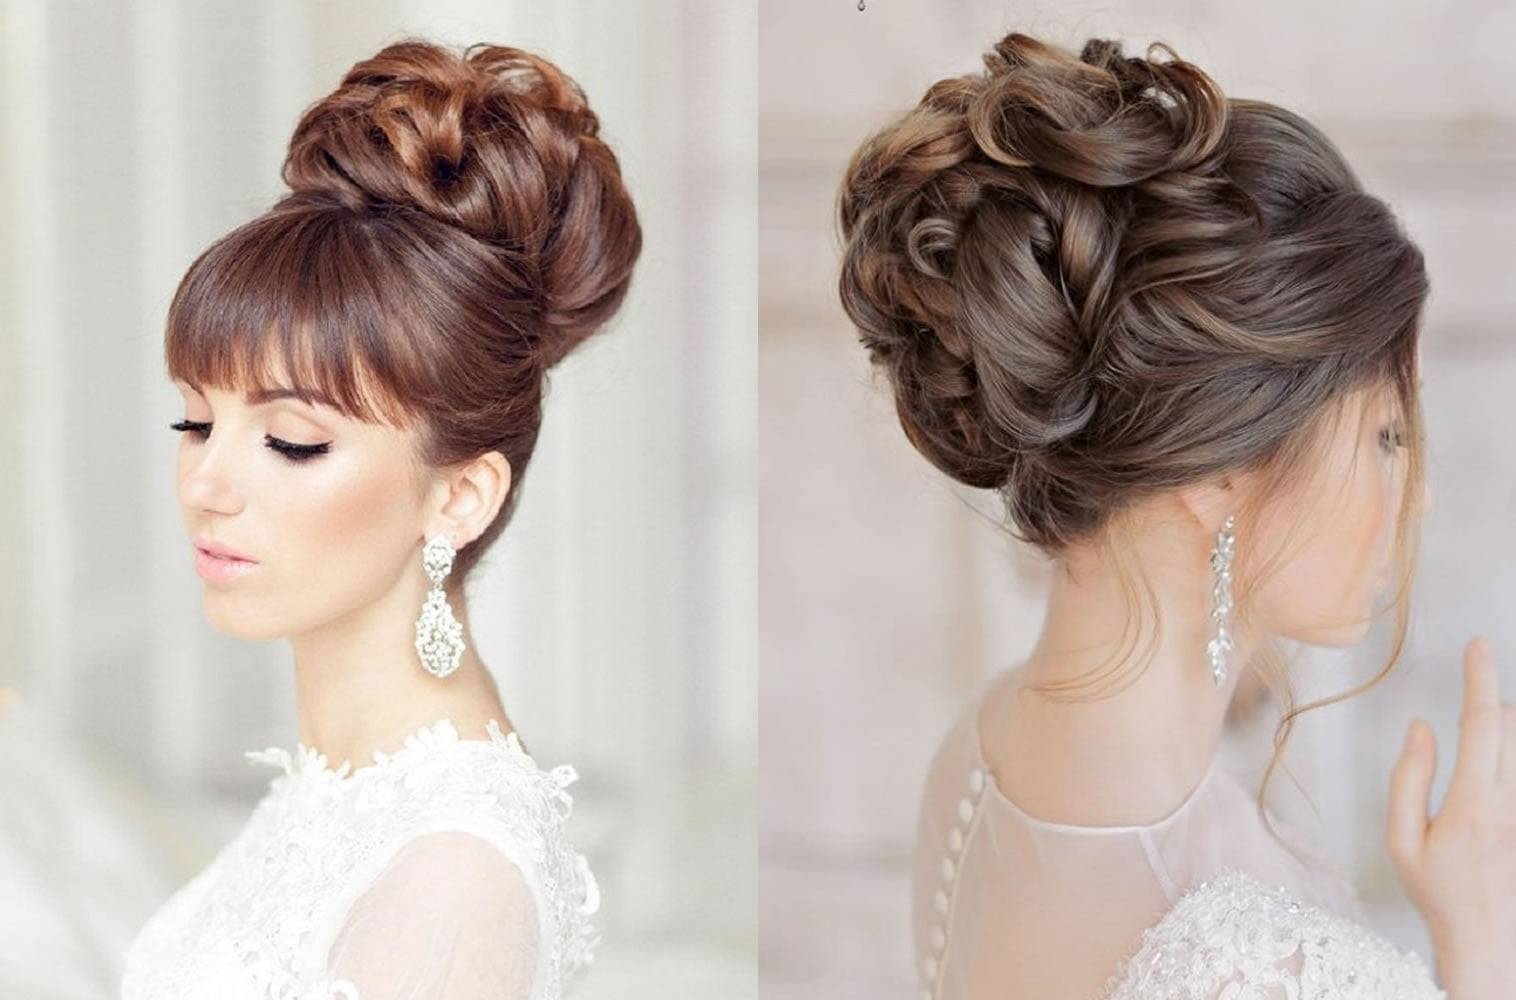 Hairstyles Of 2019: Wedding Hairstyles Down 2019